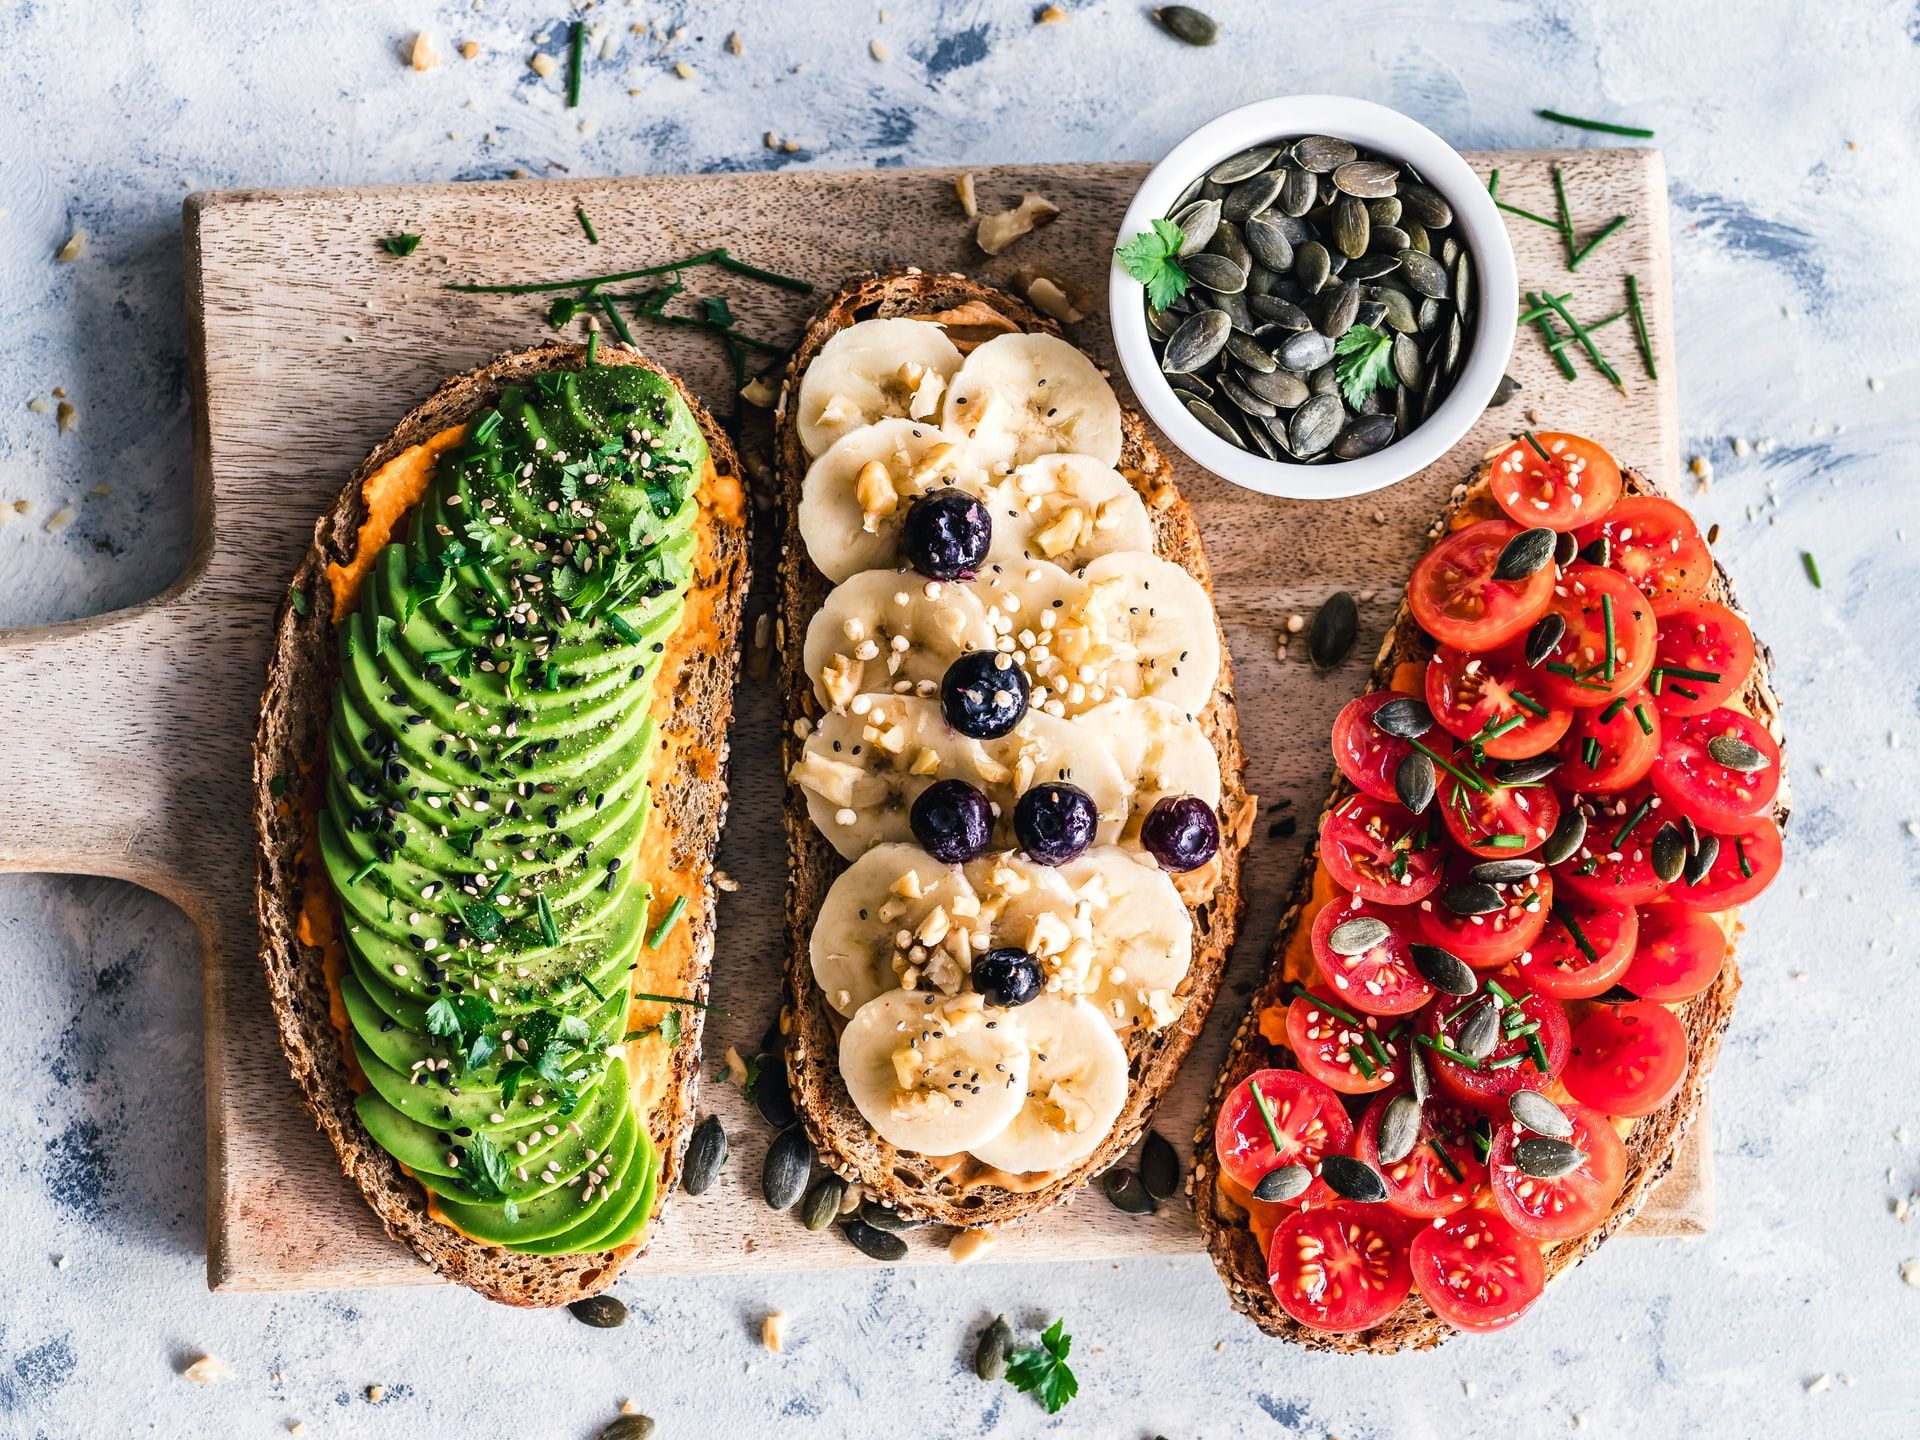 15 Vegan and Vegetarian Instagram Accounts To Follow